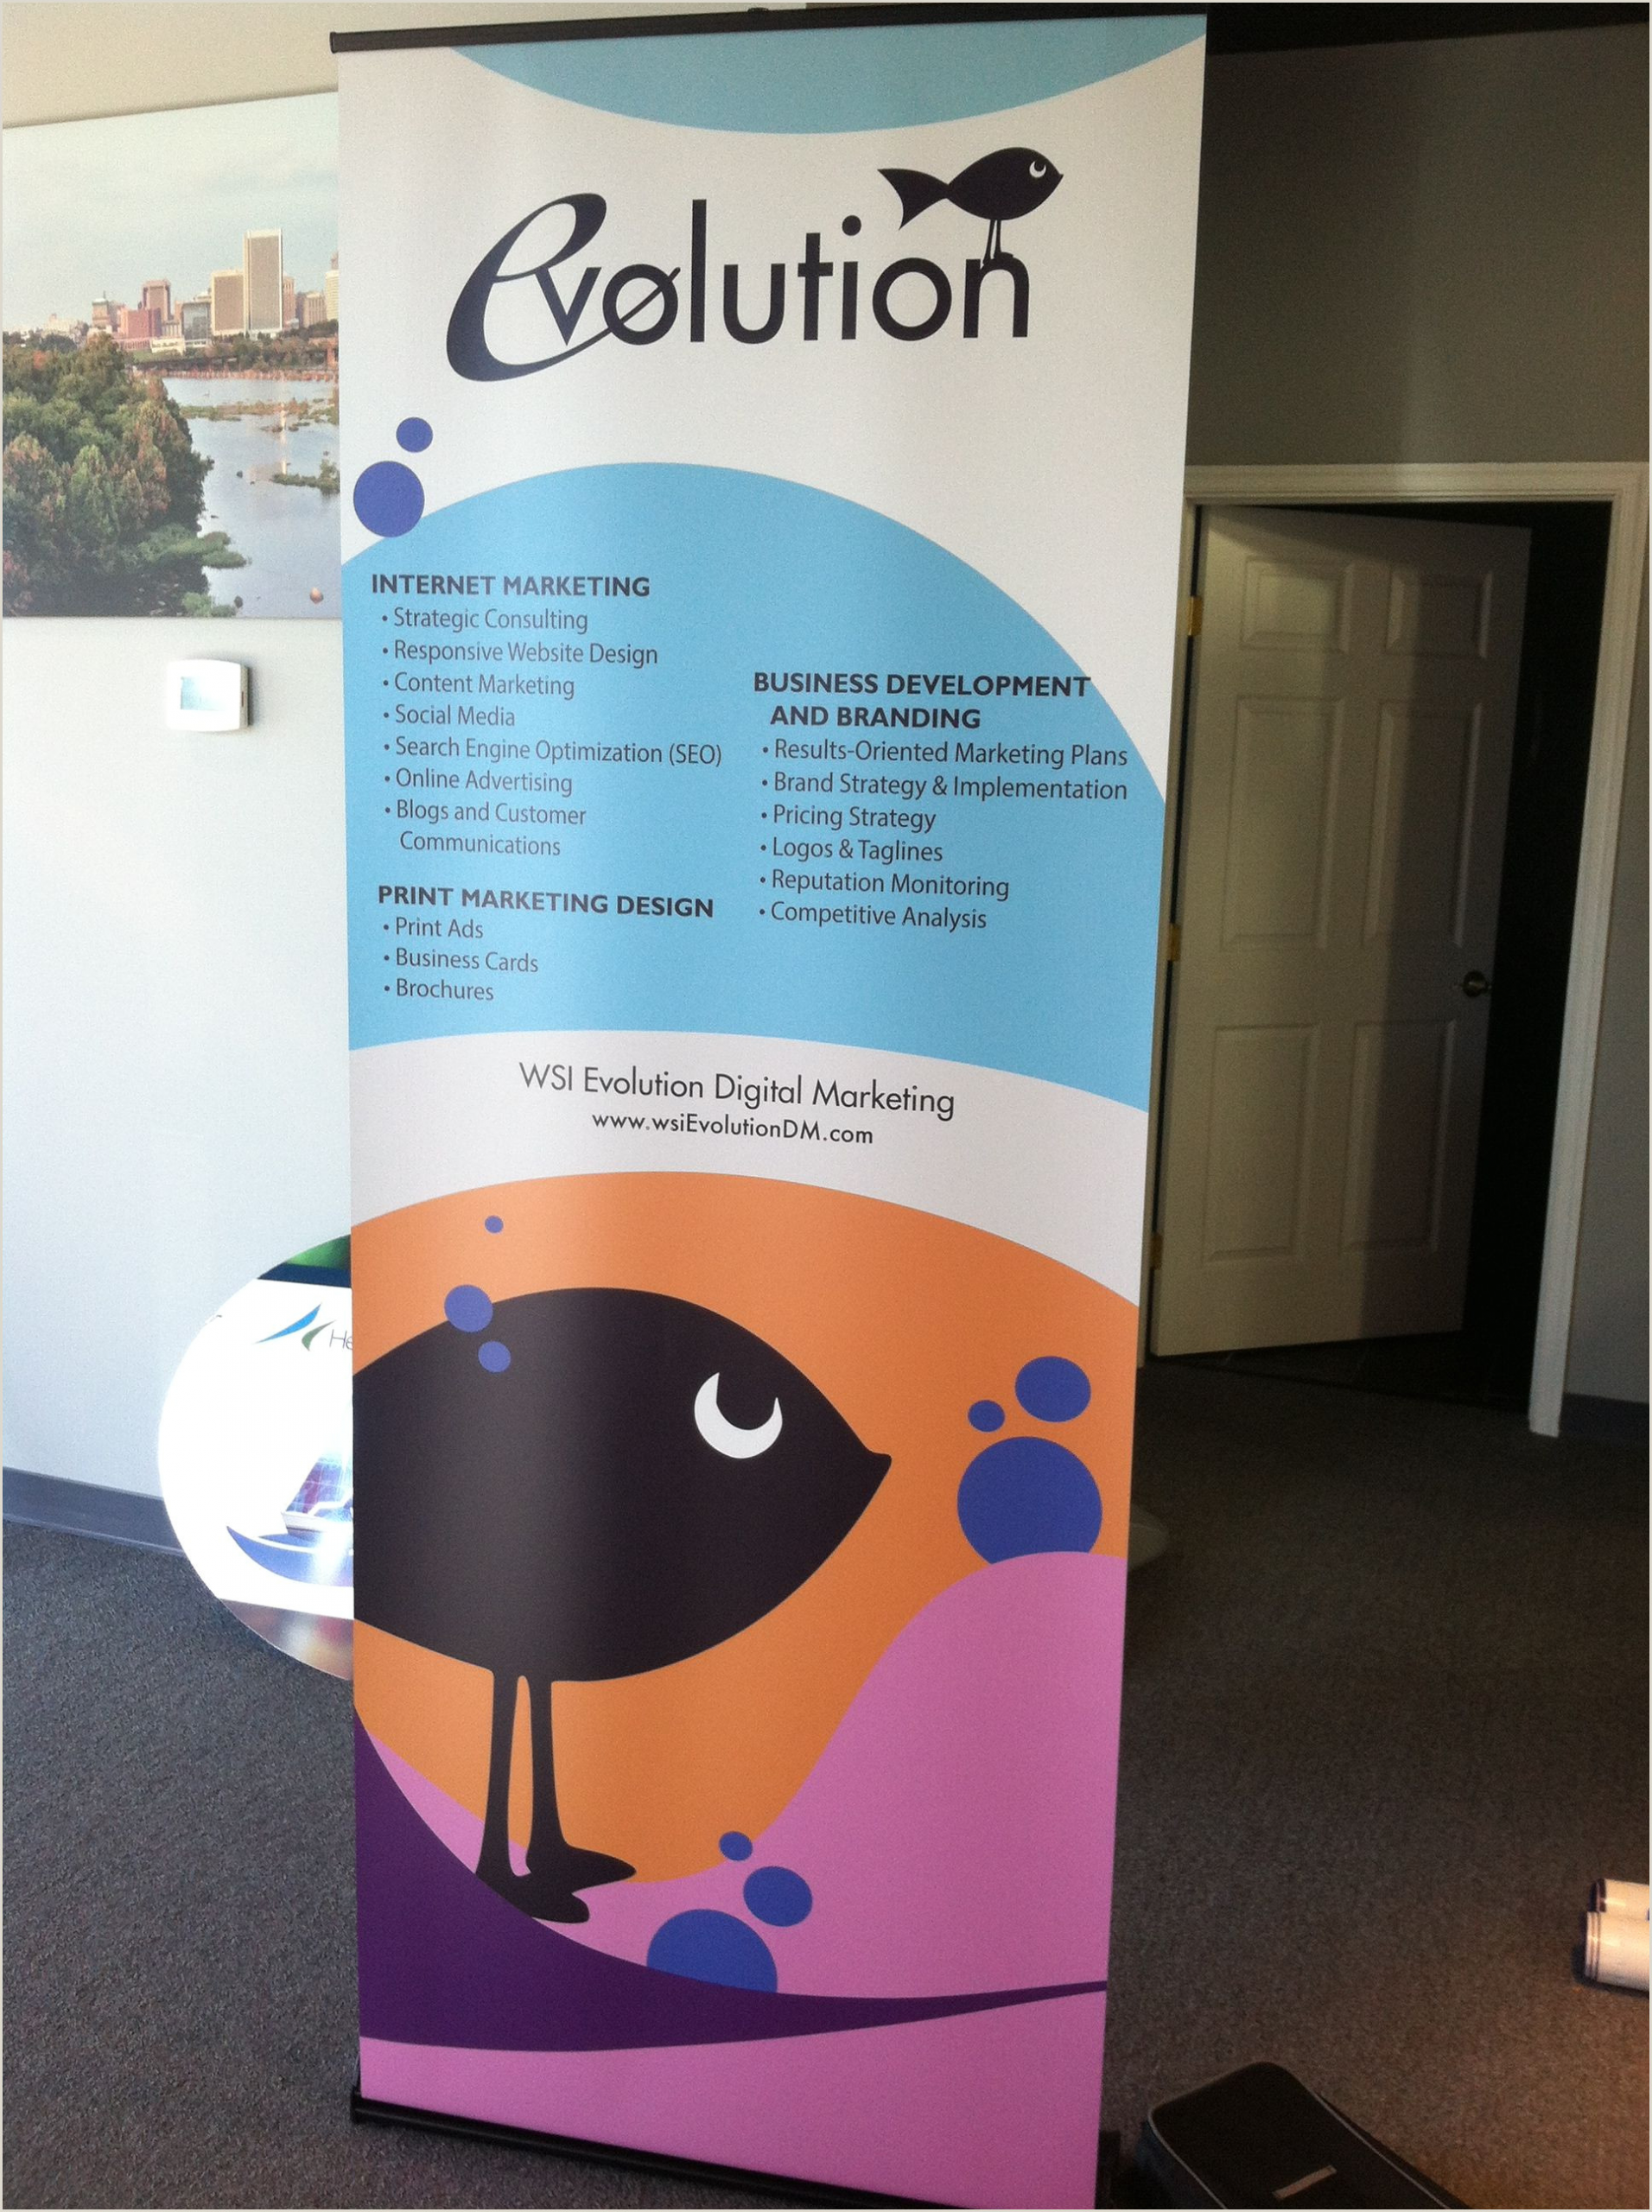 Retractable Banners Printing The Colors And Graphics Are Great On This Retractable Banner